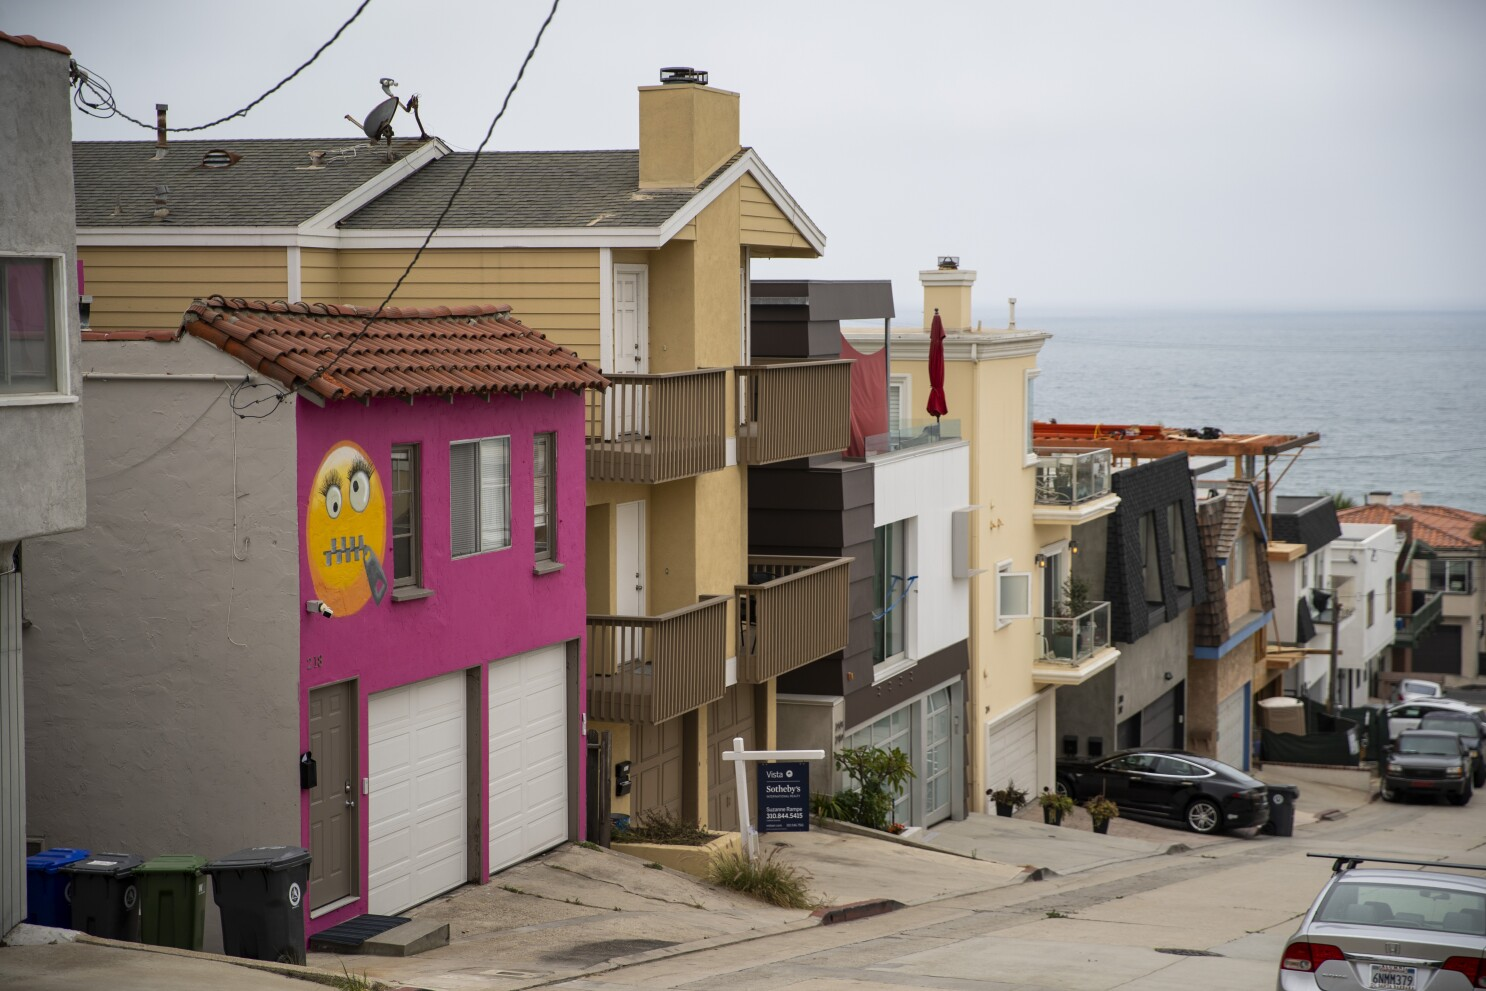 Startled by Manhattan Beach's emoji house? Let me tell you about spite houses and my lunch in Sarajevo